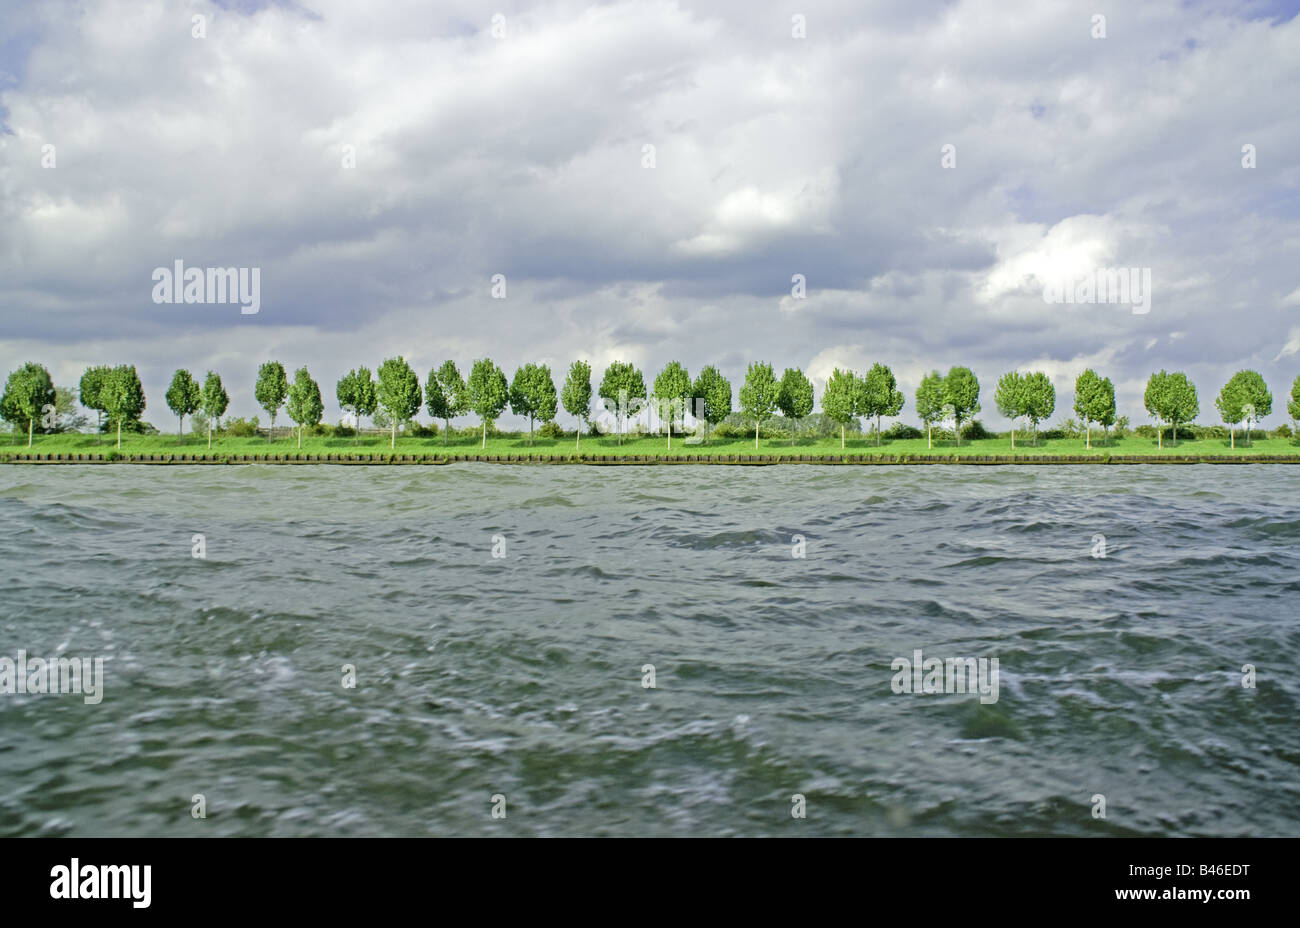 Poplar trees lining the Amsterdam-Rhine Canal - Stock Image